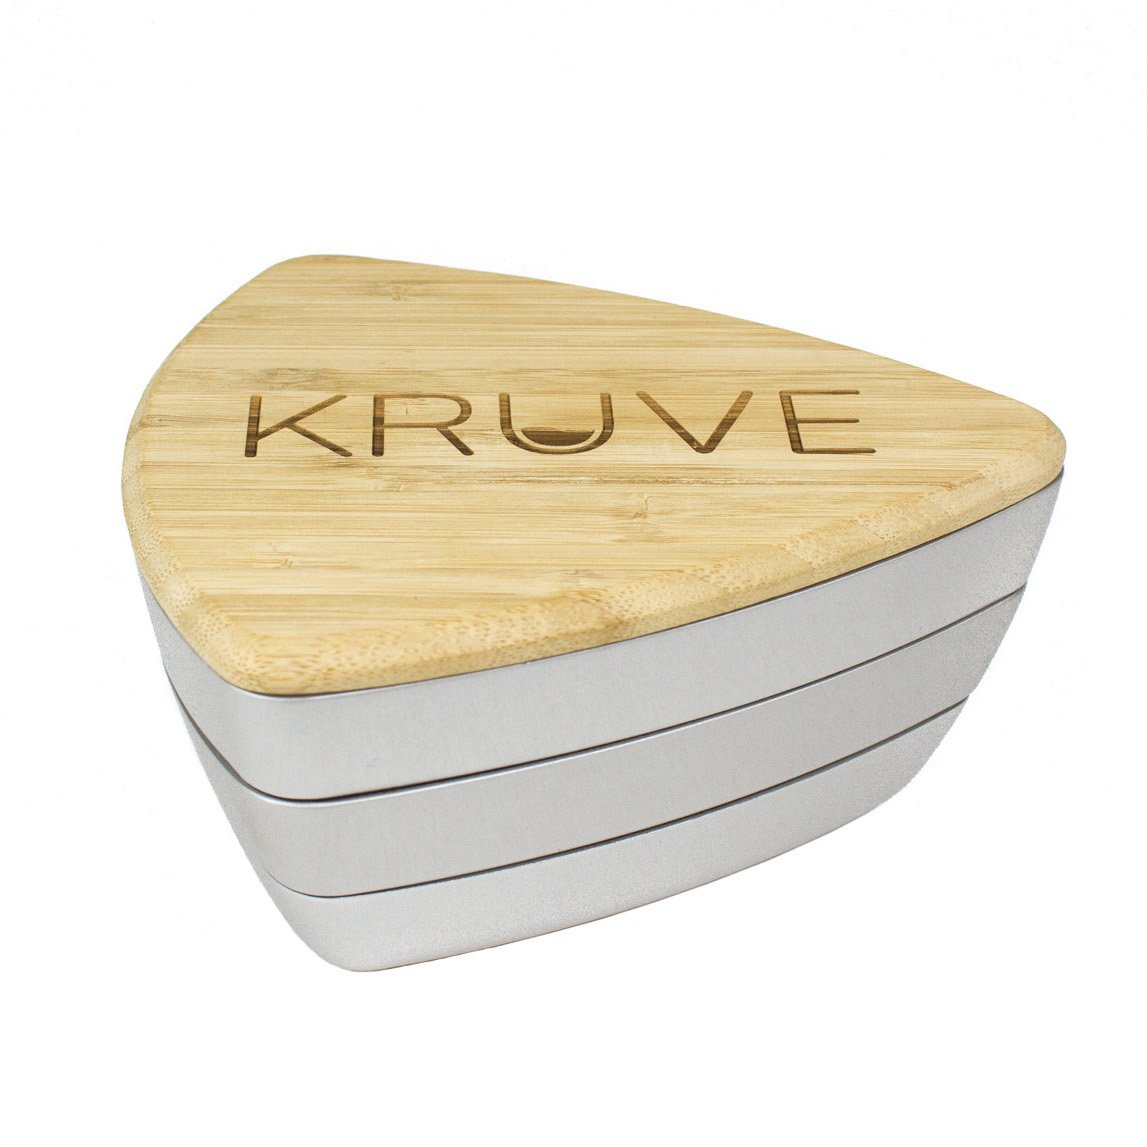 KRUVE Sifter Twelve Helps Accurately Measure, Calibrate, Refine Coffee Grinds, Great for Cafes, Baristas, Or Home Brewers, 12 Interchangeable Sieves, Silver by KRUVE (Image #1)